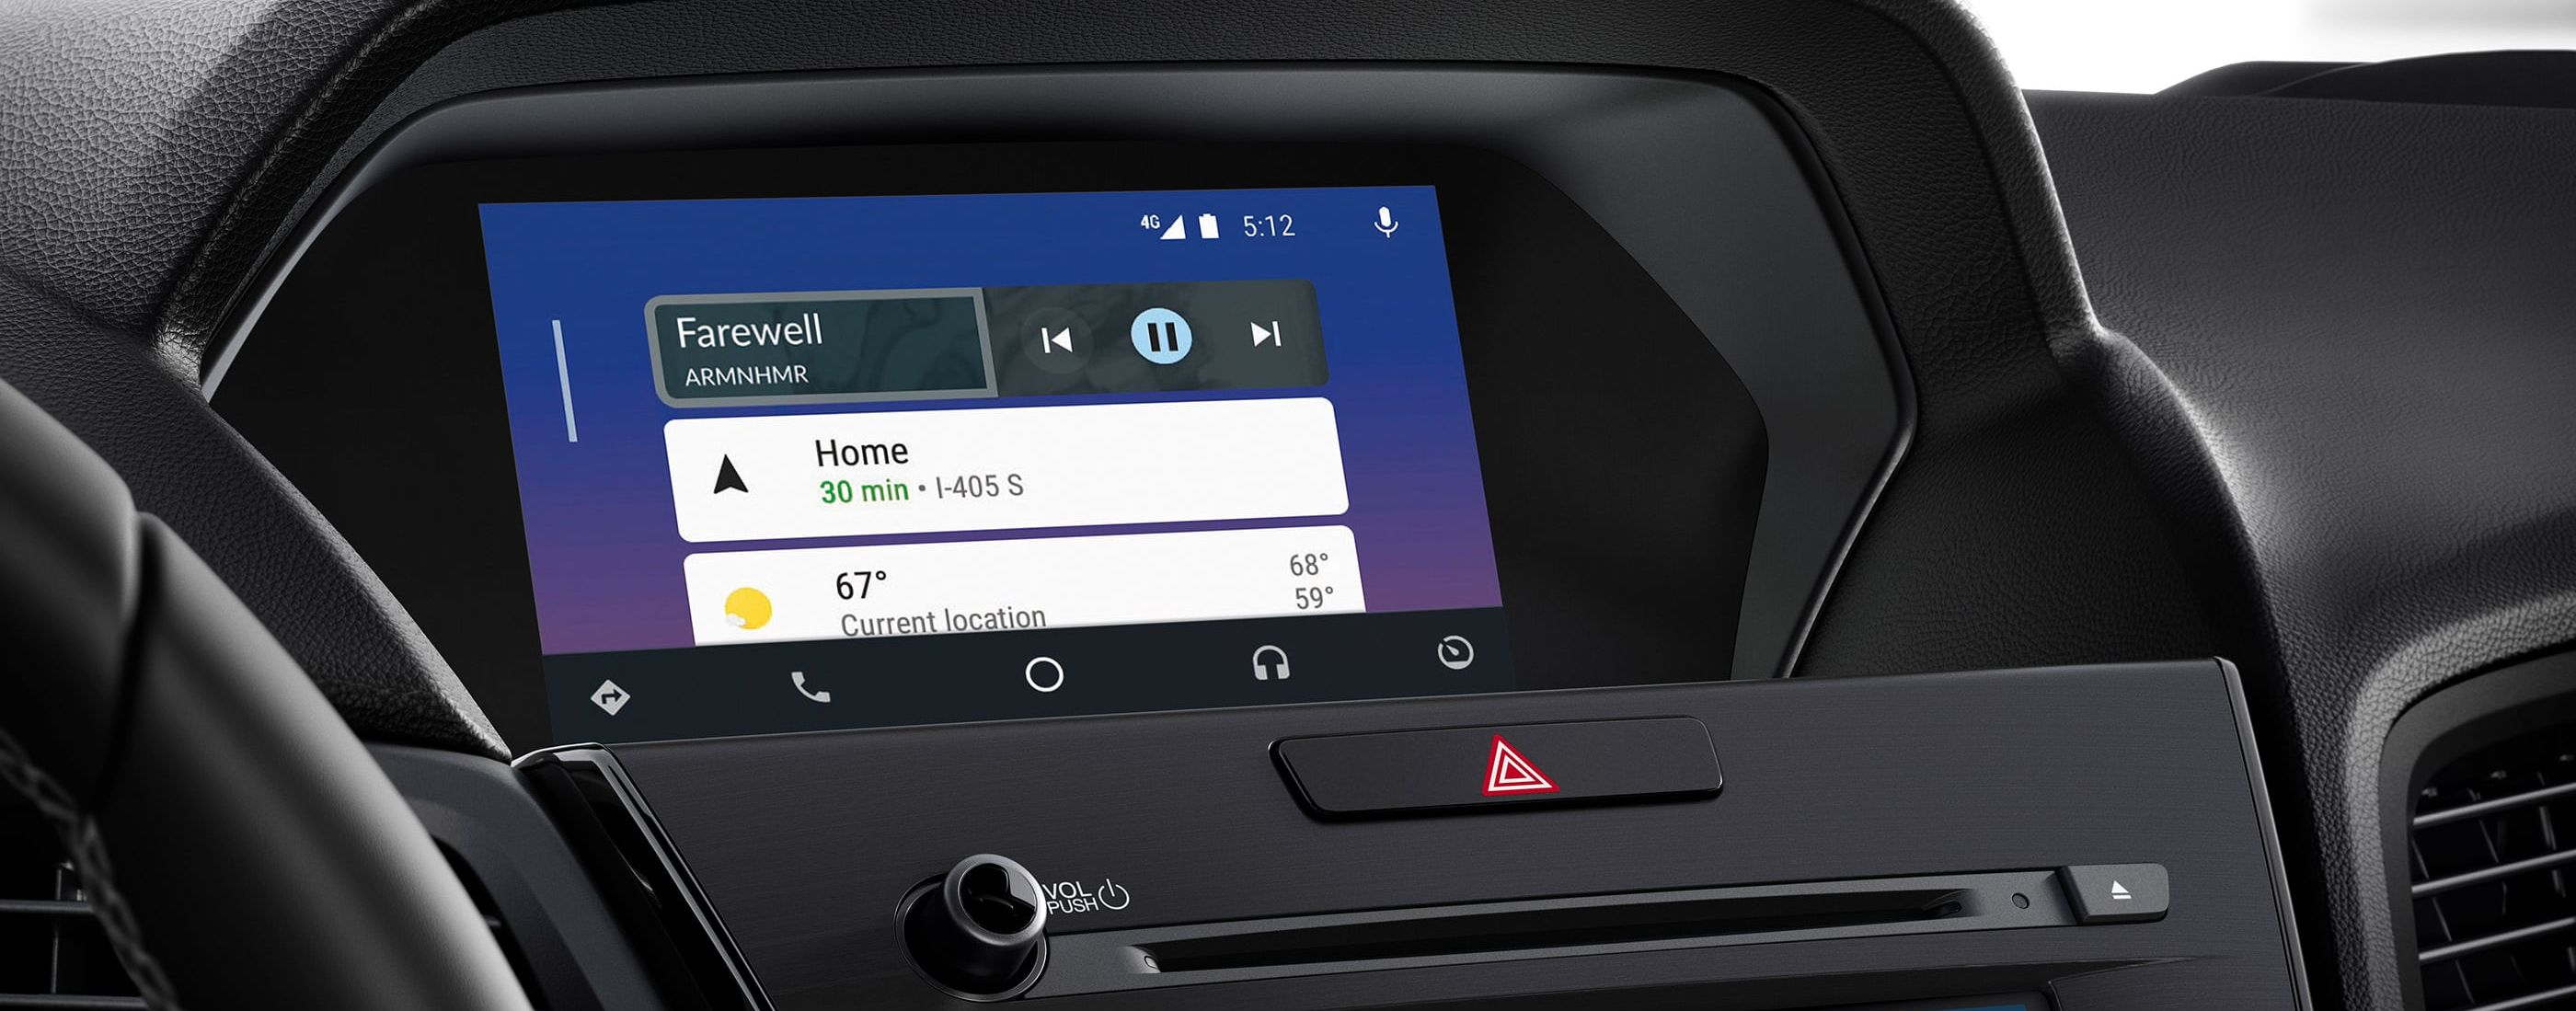 The ILX's Sleek Dashboard Display